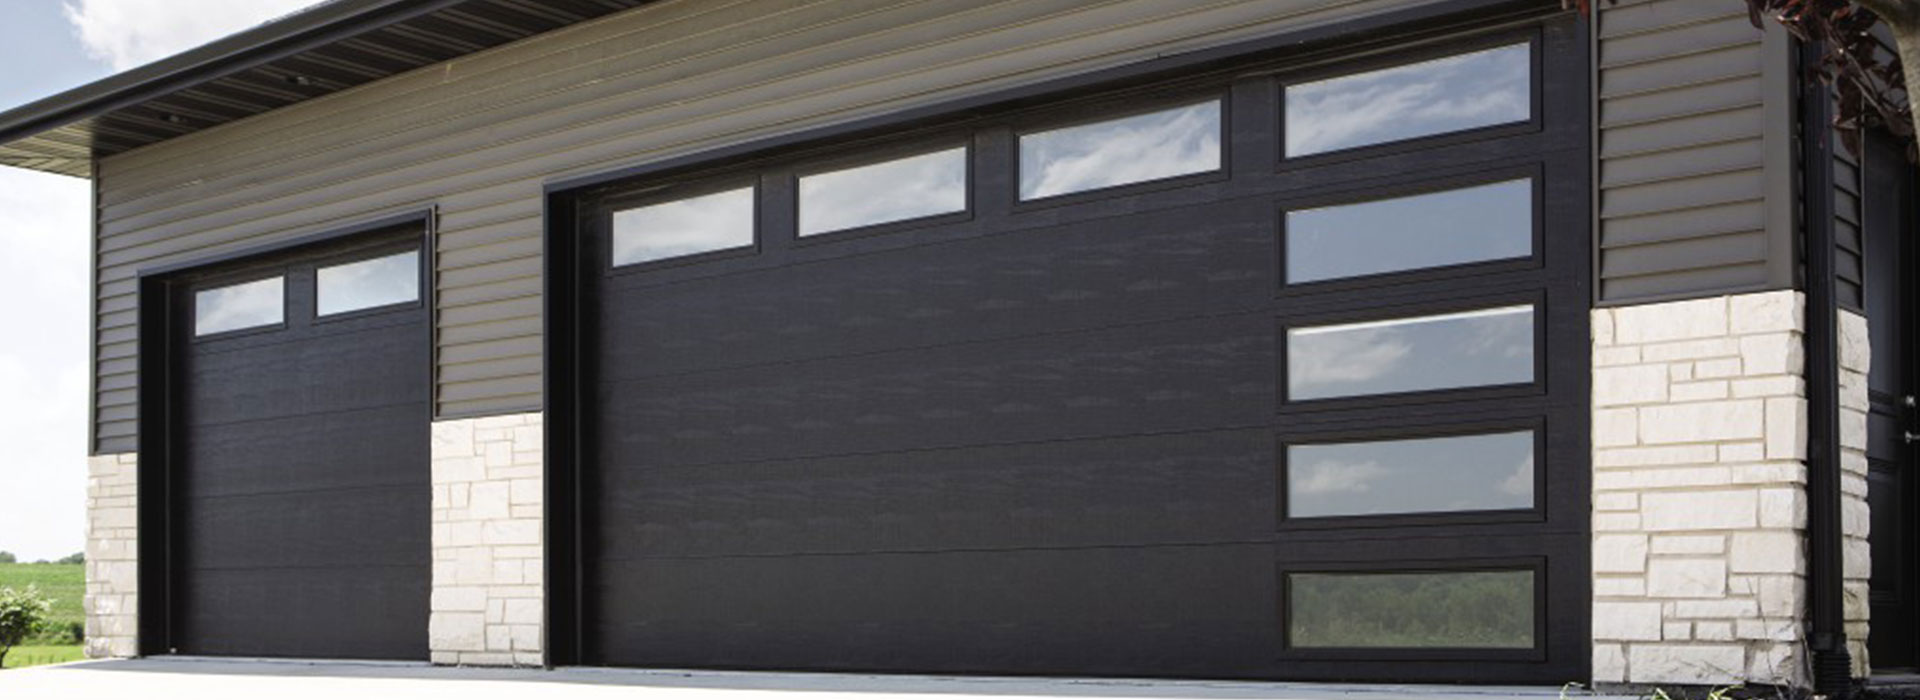 Garage Doors Winnipeg >> Overhead Door Of Winnipeg Brandon Garage Doors And Openers